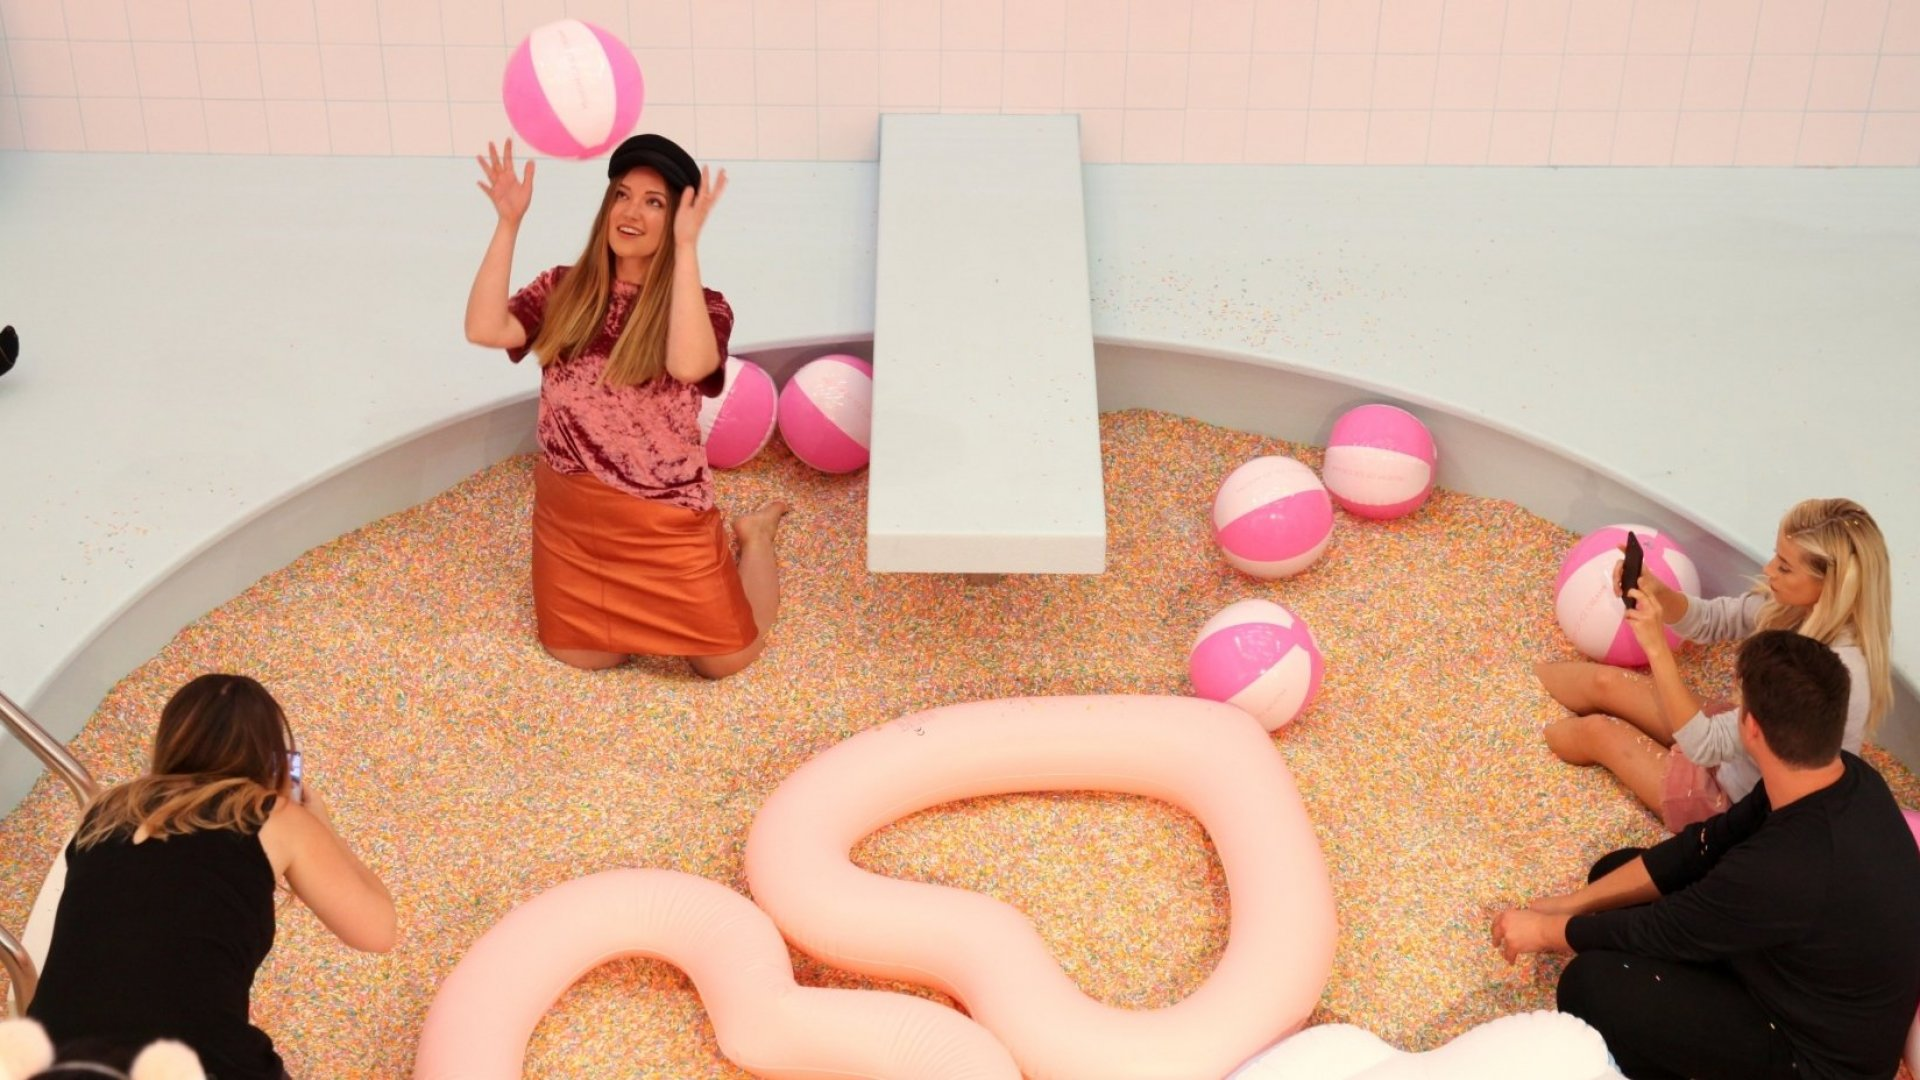 How This 27-Year-Old Turned a Whimsical Summer Project Into a Business Valued at $200 Million